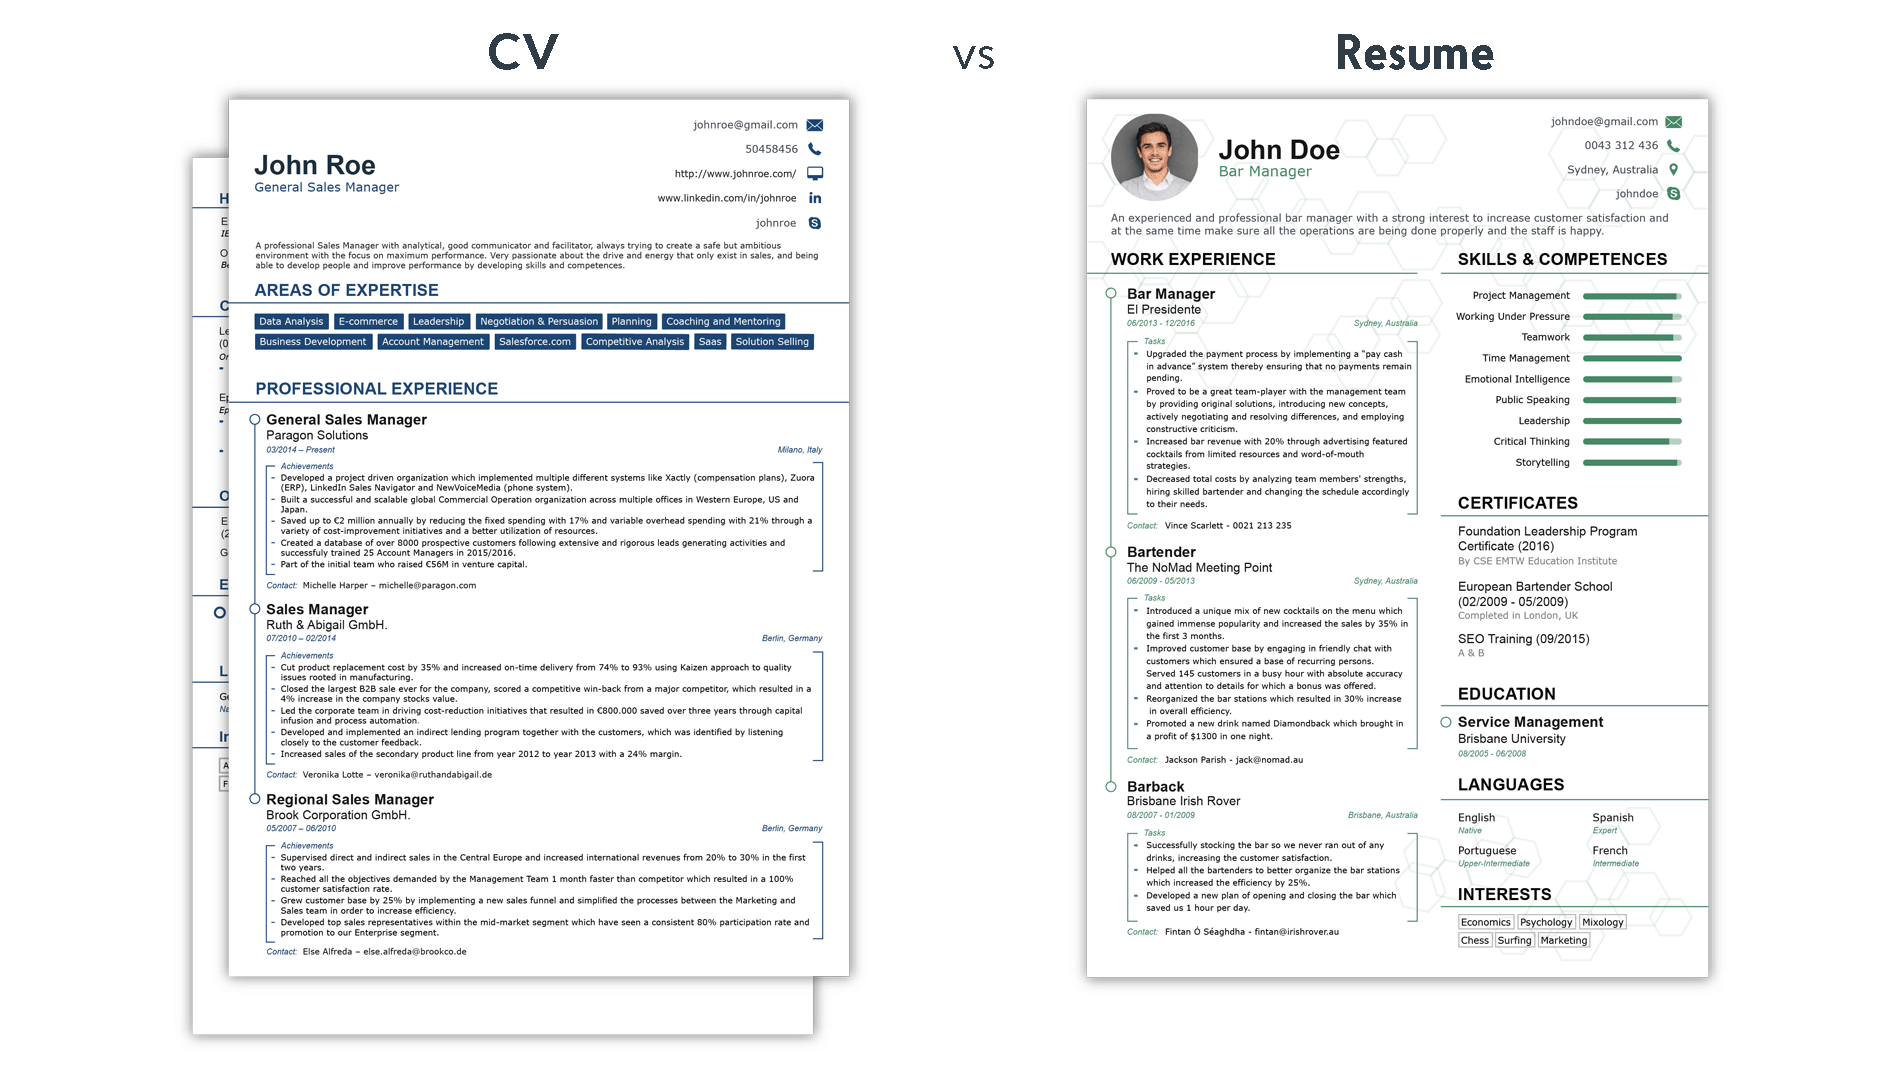 curriculum vitae vs resume - How To Write Good Resume